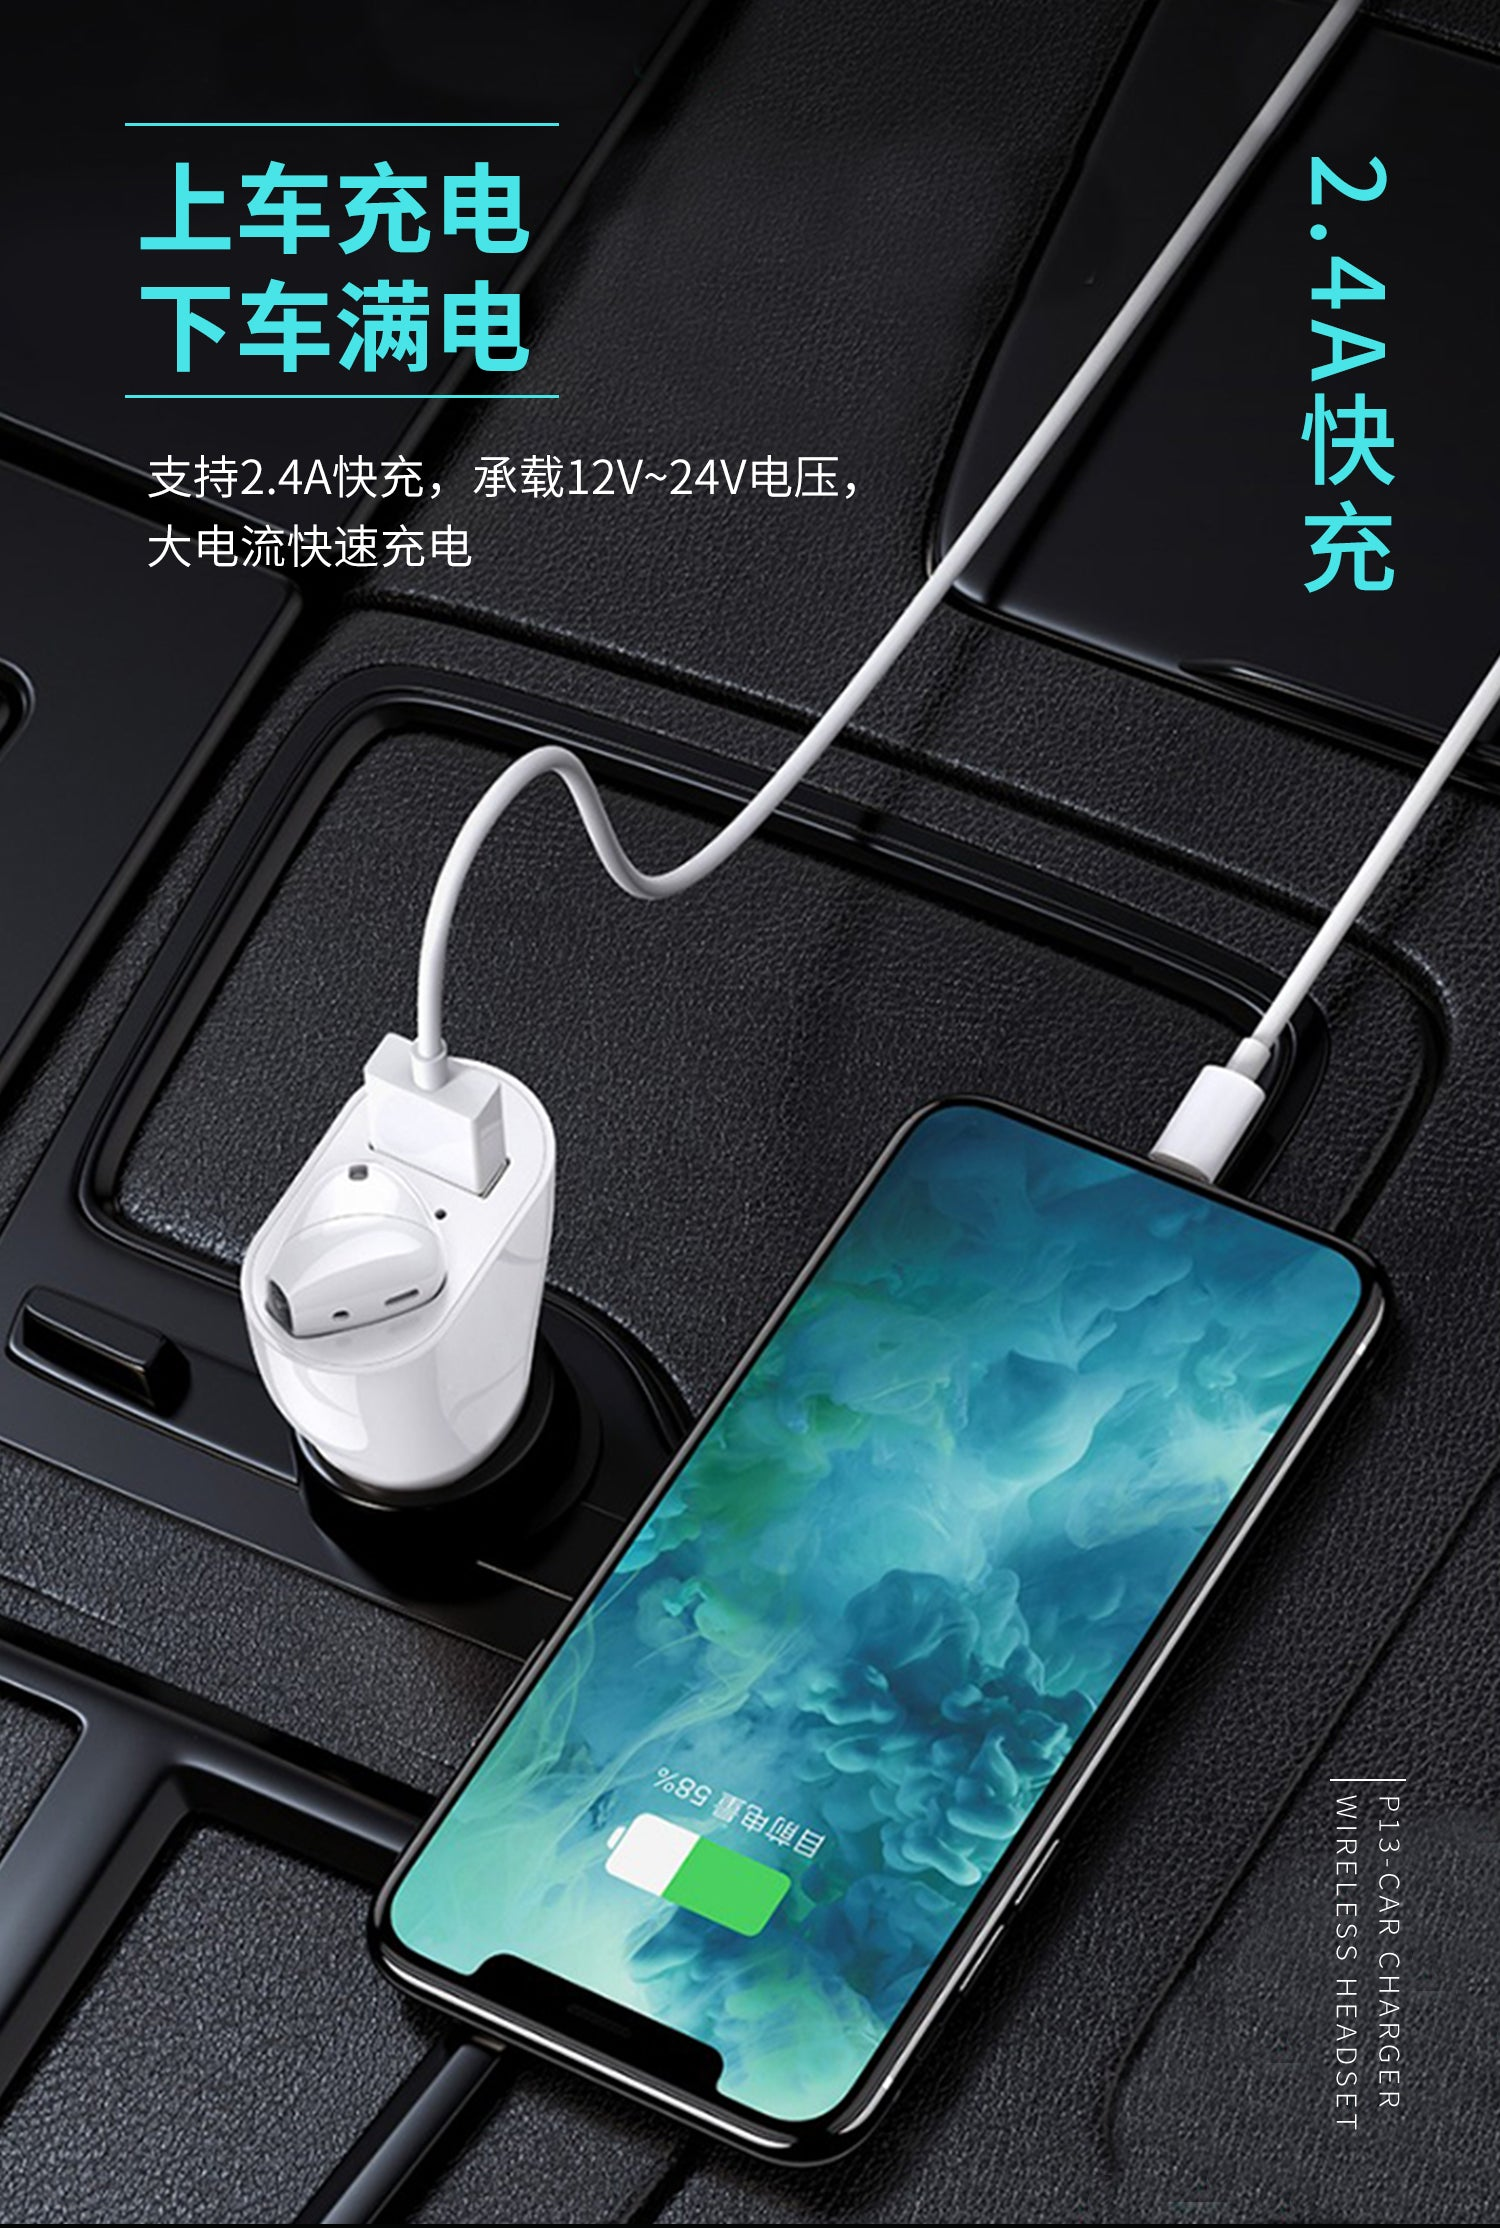 P13 Car Charger + Wireless Headset - i-s-mart.com | No.1 Branded Online Shop in Cambodia